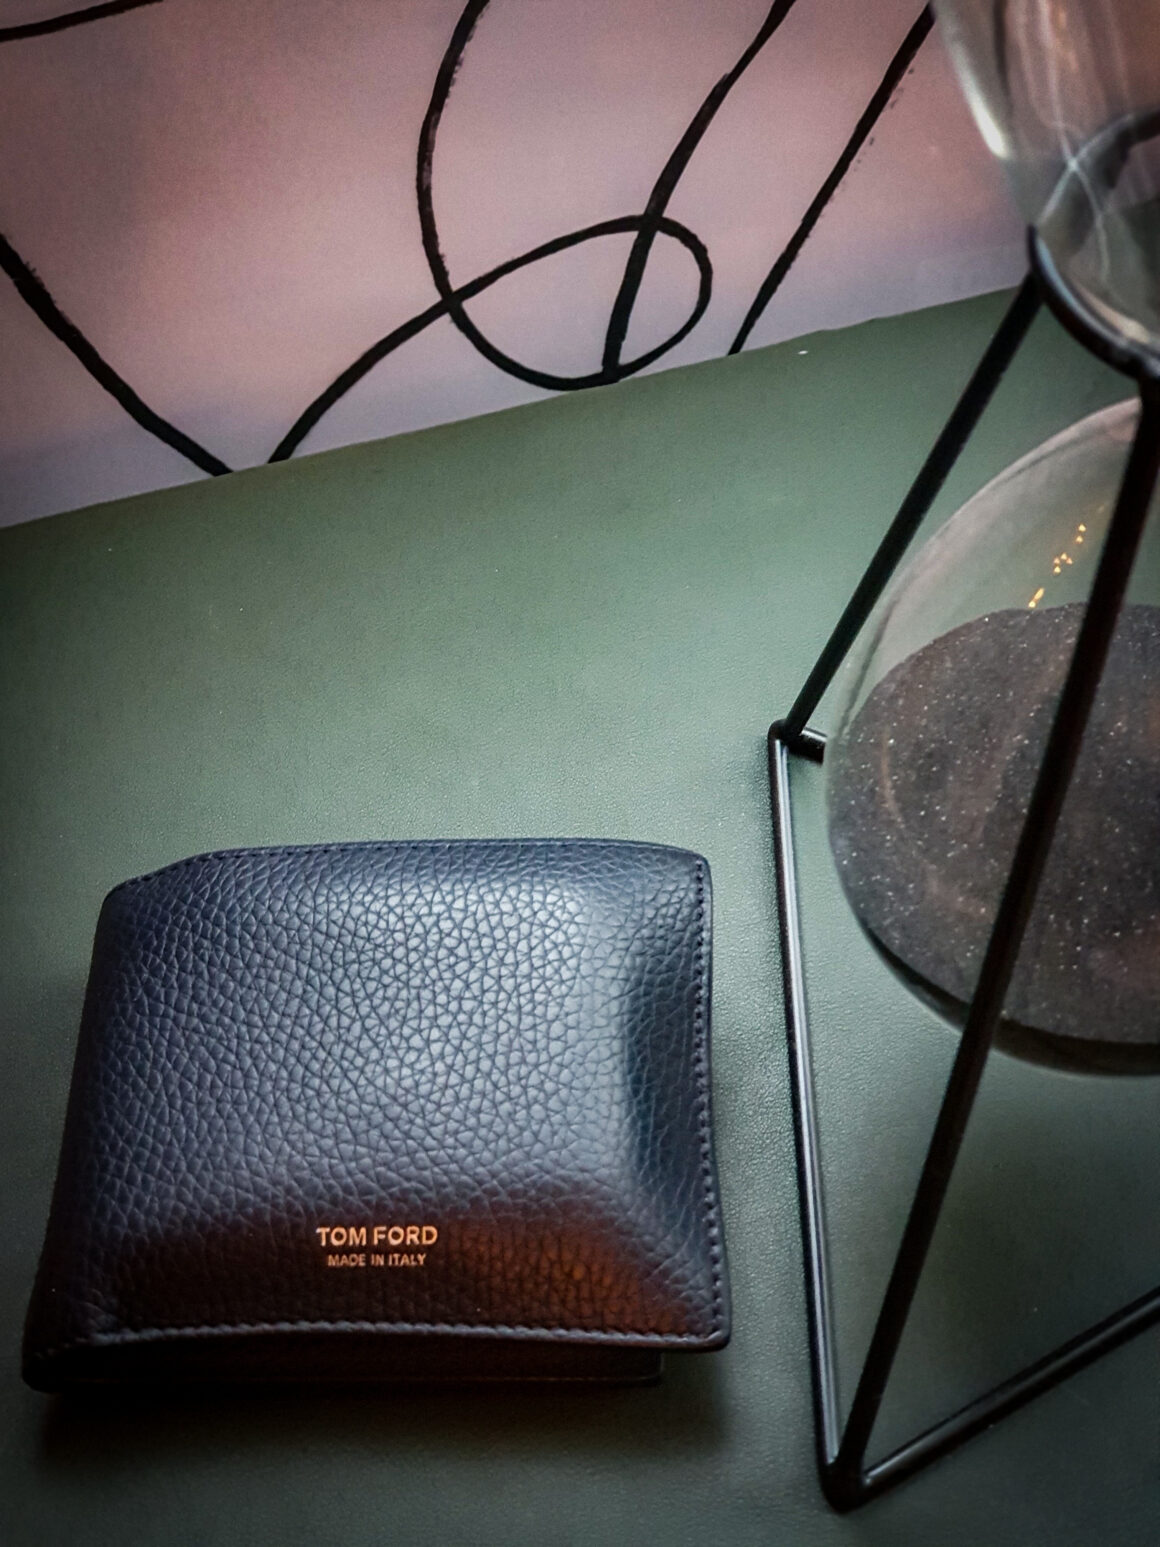 Precisely picked Christmas presents for him - Tom Ford Wallet